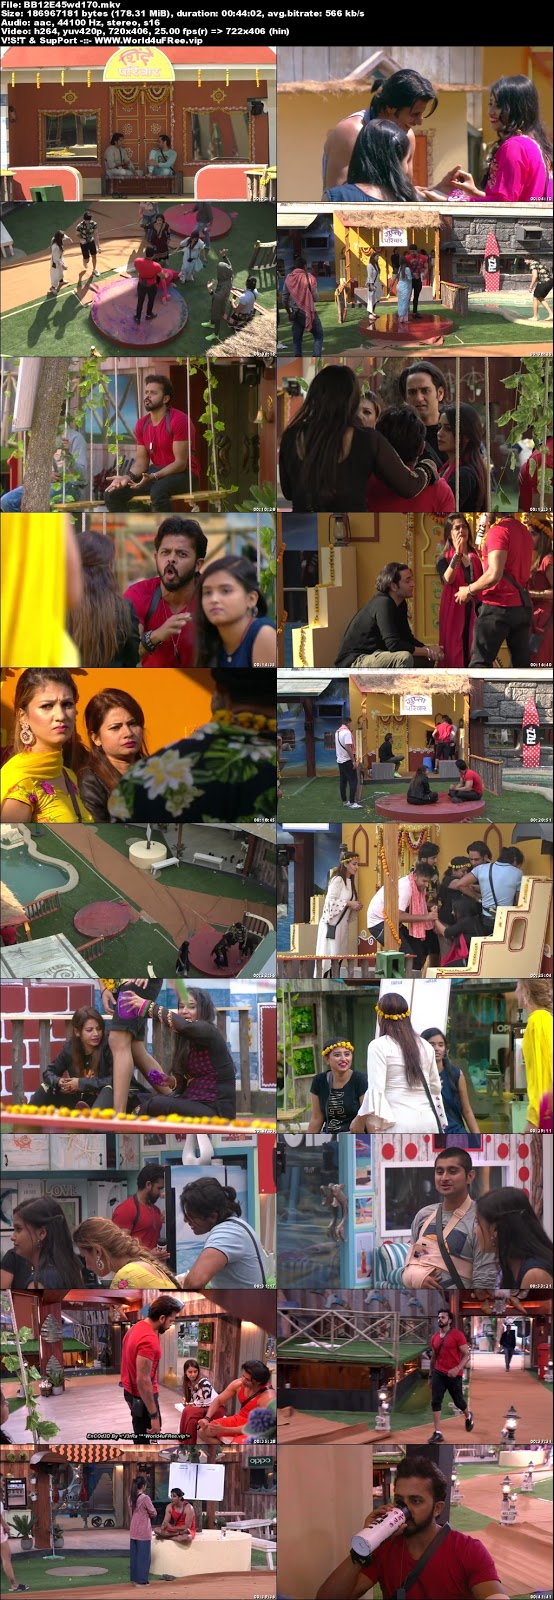 Bigg Boss 12 Episode 45 31 October 2018 WEBRip 480p 170Mb x264 world4ufree.vip tv show Episode 45 31 October 2018 world4ufree.vip 200mb 250mb 300mb compressed small size free download or watch online at world4ufree.vip